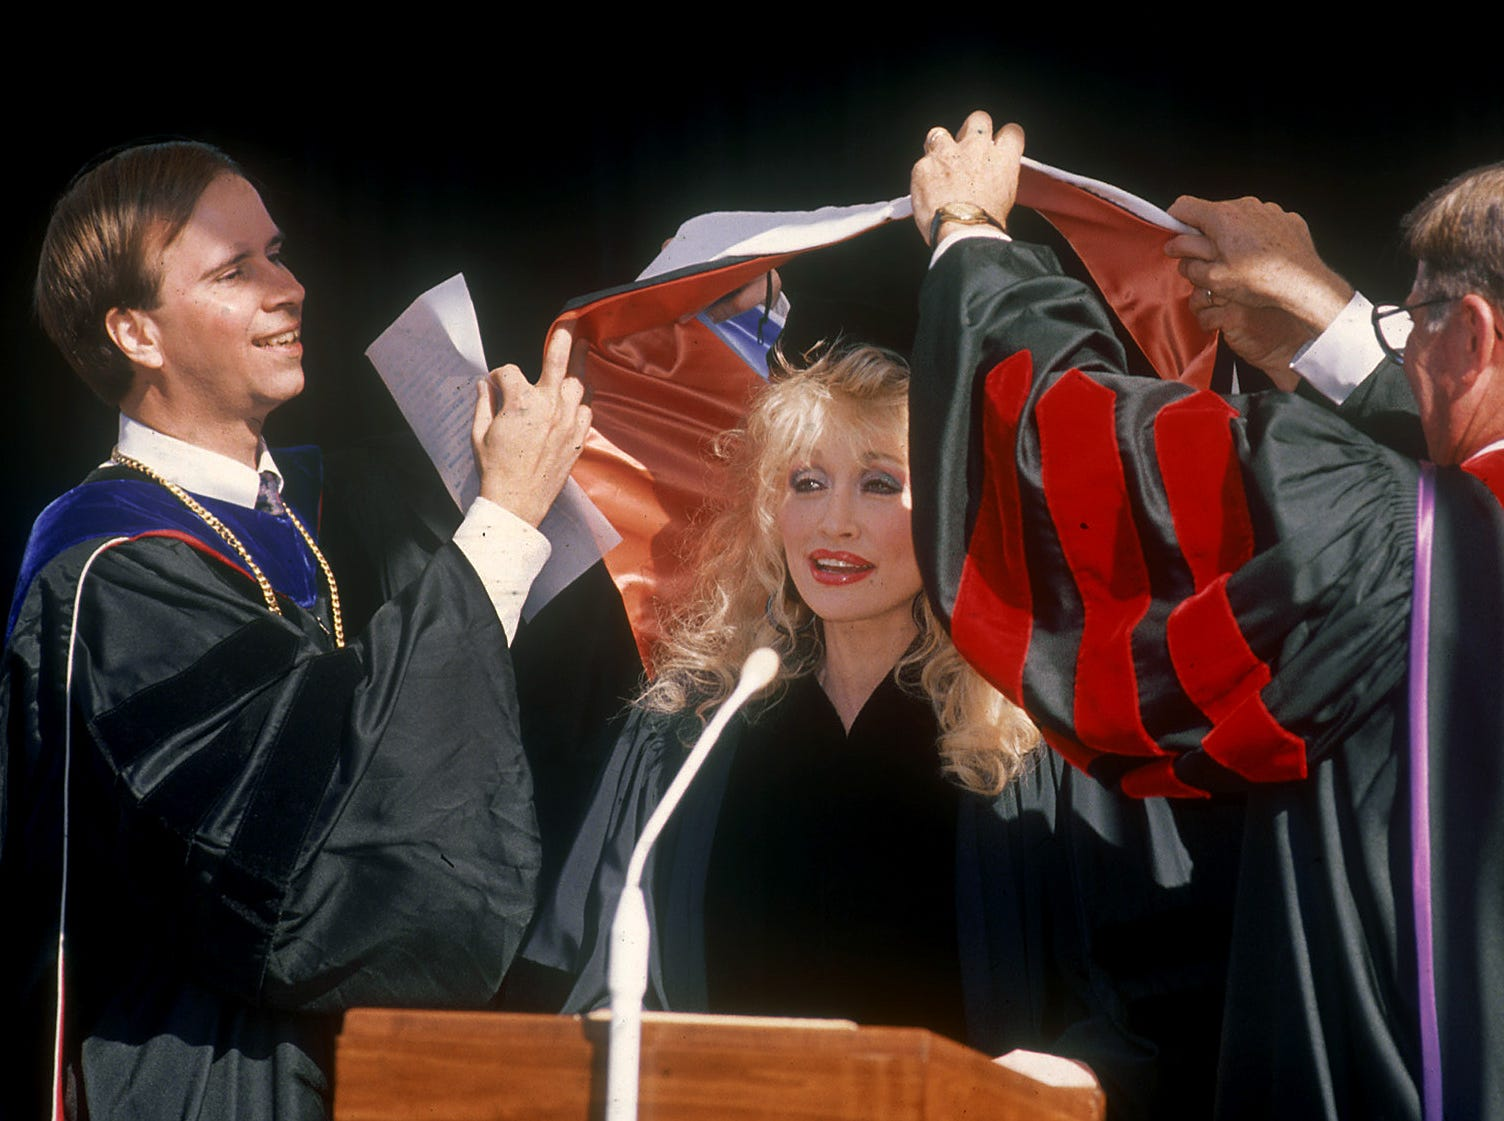 Mr. Michael carter, VP of Academic Affairs (left) and Dr. Cordell Maddox, President of Carson-Newman confer an honorary degree on Dolly Parton on Oct 21, 1990.